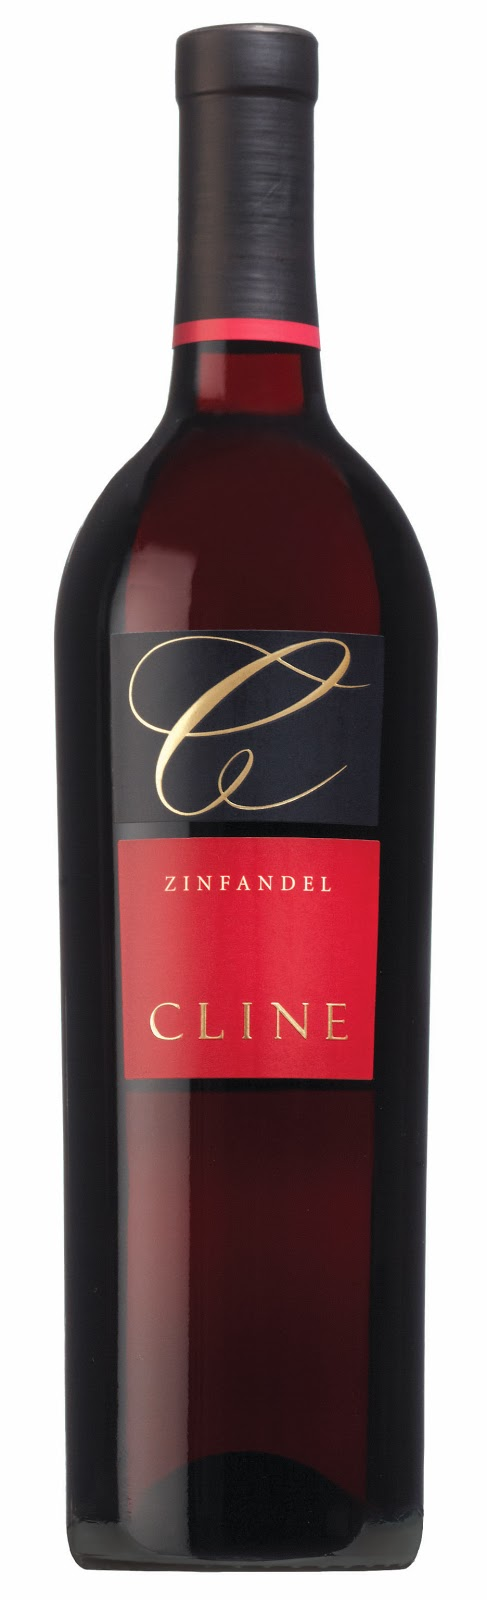 Cline Zinfandel, 2012, Lodi, California